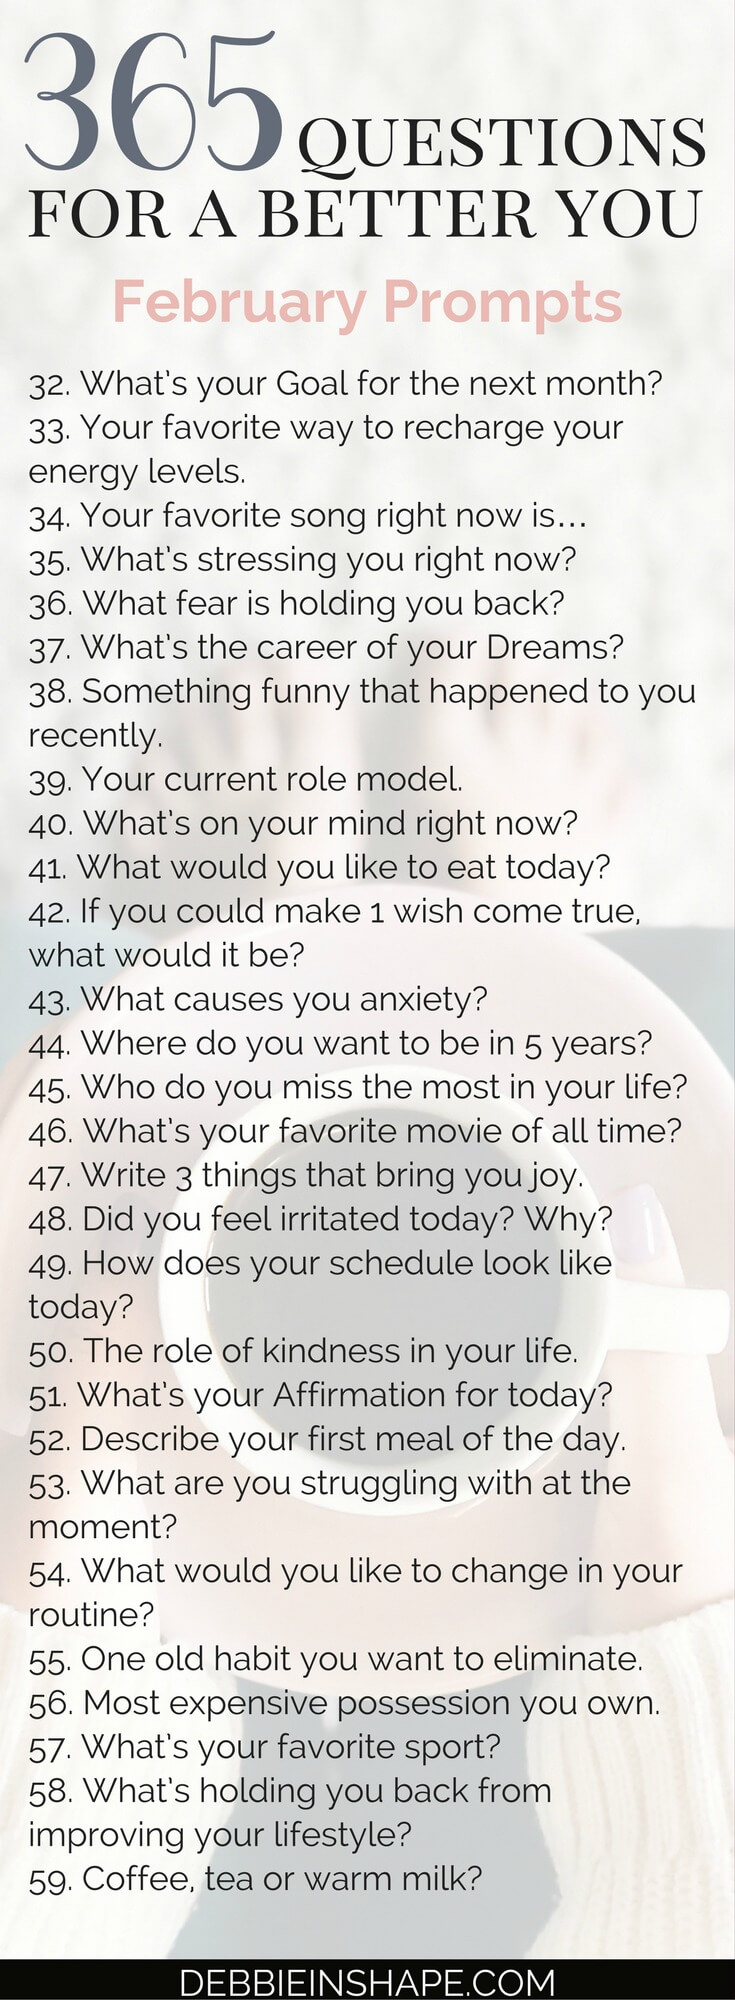 And it's already time for the 365 Questions For A Better You the February edition. Let's continue reflecting about ourselves to grow and improve. Learn how to become a better version of yourself one day at a time by joining the Facebook group #PlanWithDebbie for support, accountability, and motivation. #productivity #confidence #success #personaldevelopment #journaling #prompts #365questionsforabetteryou